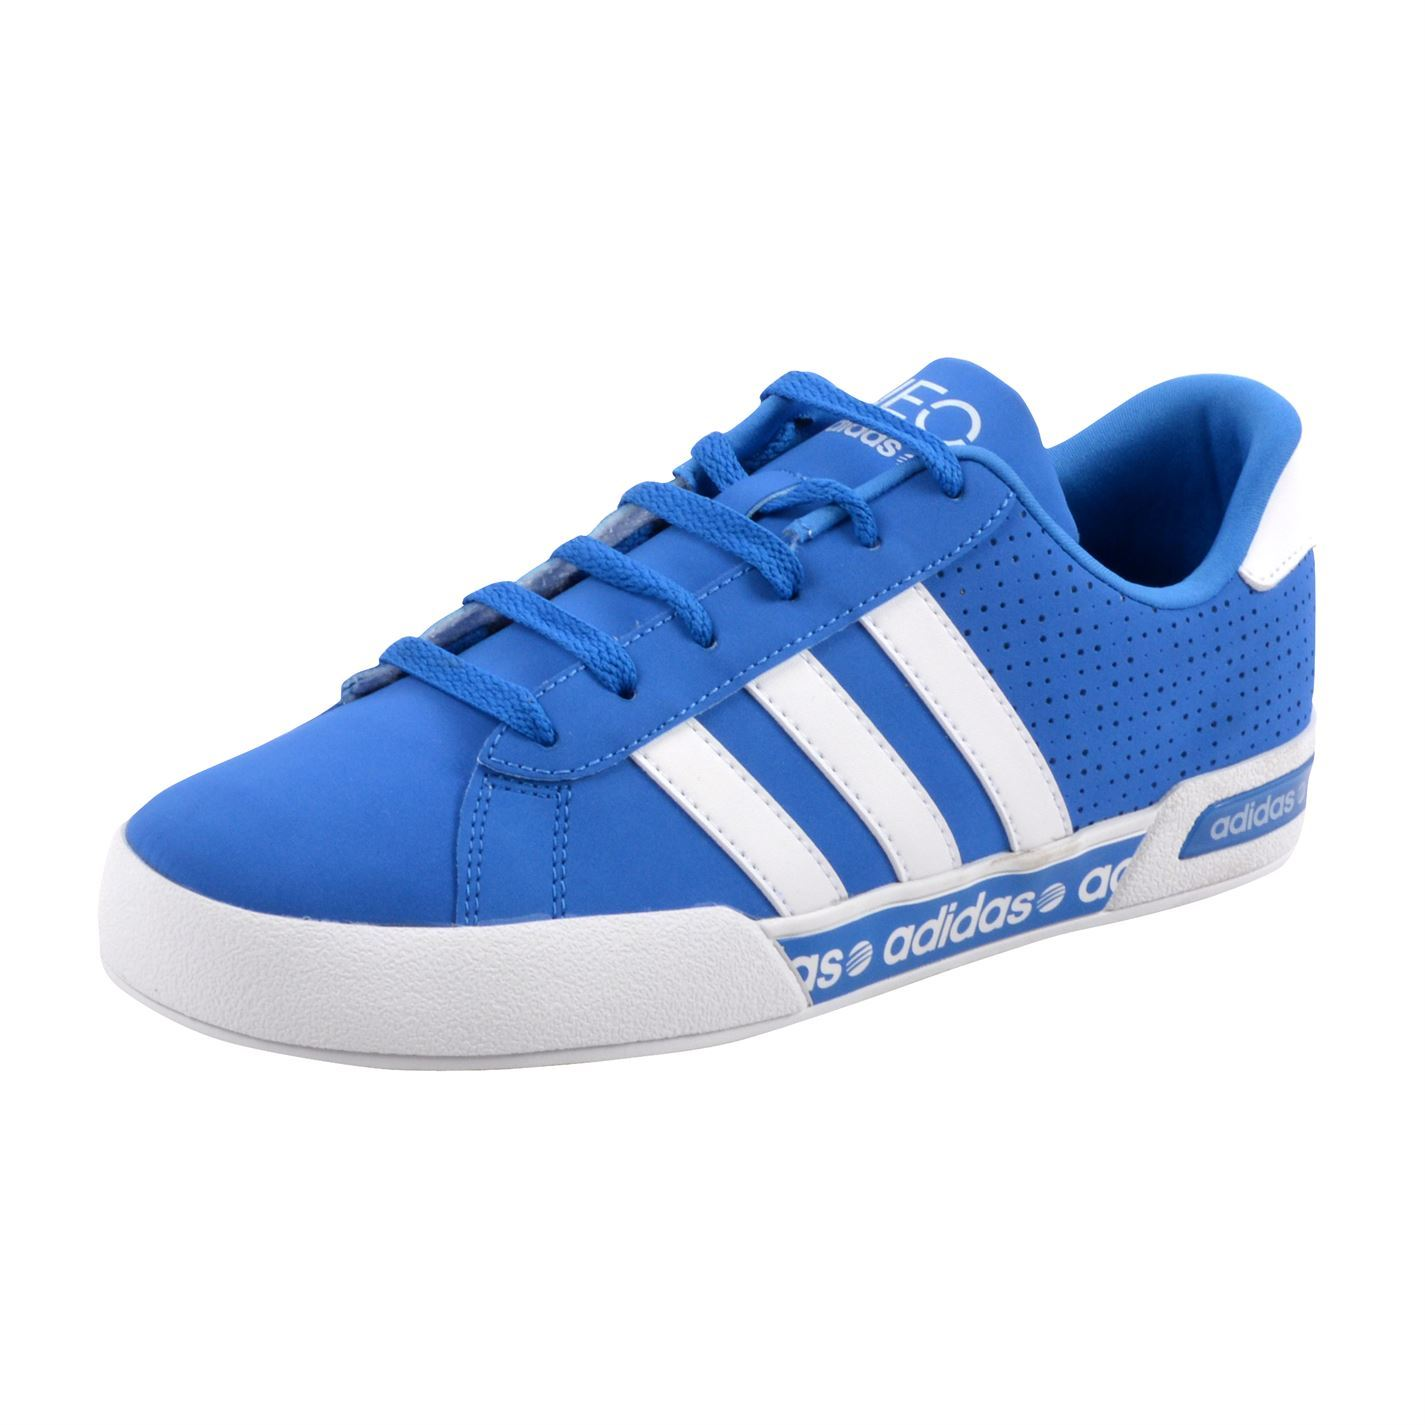 adidas Neo Daily Mono Front Trainers Pumps Running Sneakers Lace Up Gents Mens. 360 spin. adidas Neo Daily Mono Trainers